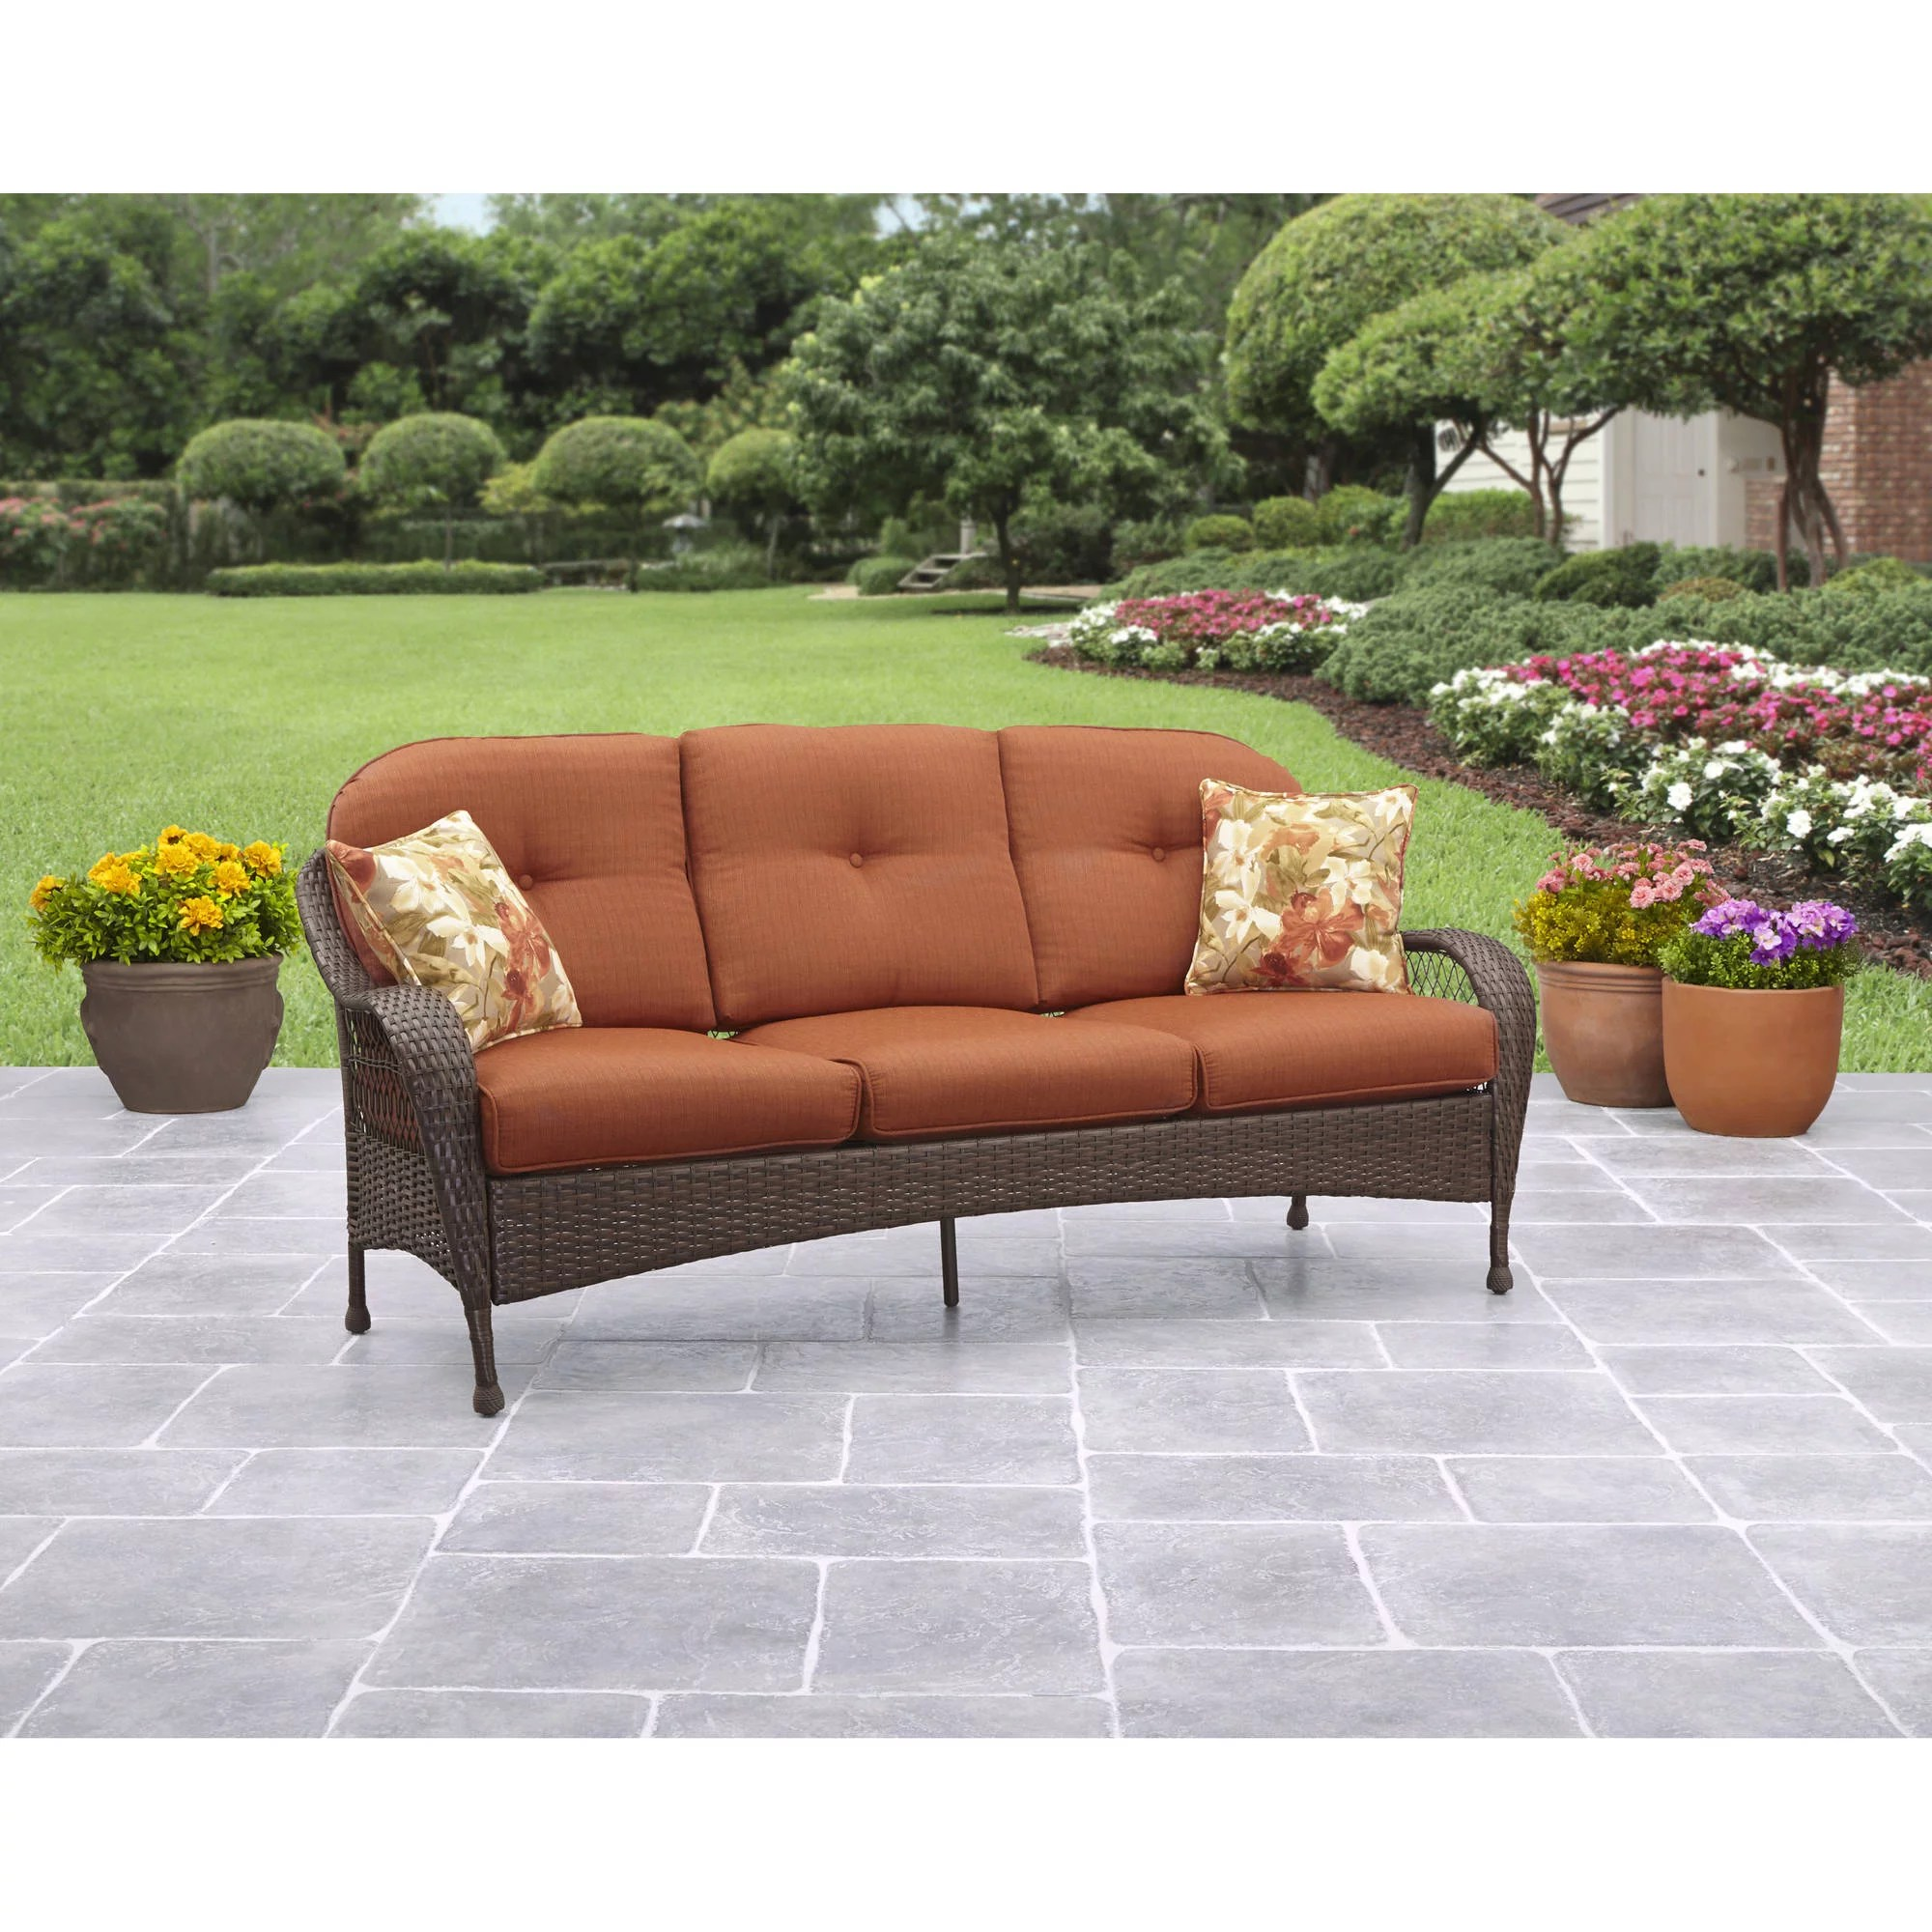 sofa in walmart large cotton throws better homes and gardens azalea ridge outdoor seats 3 com